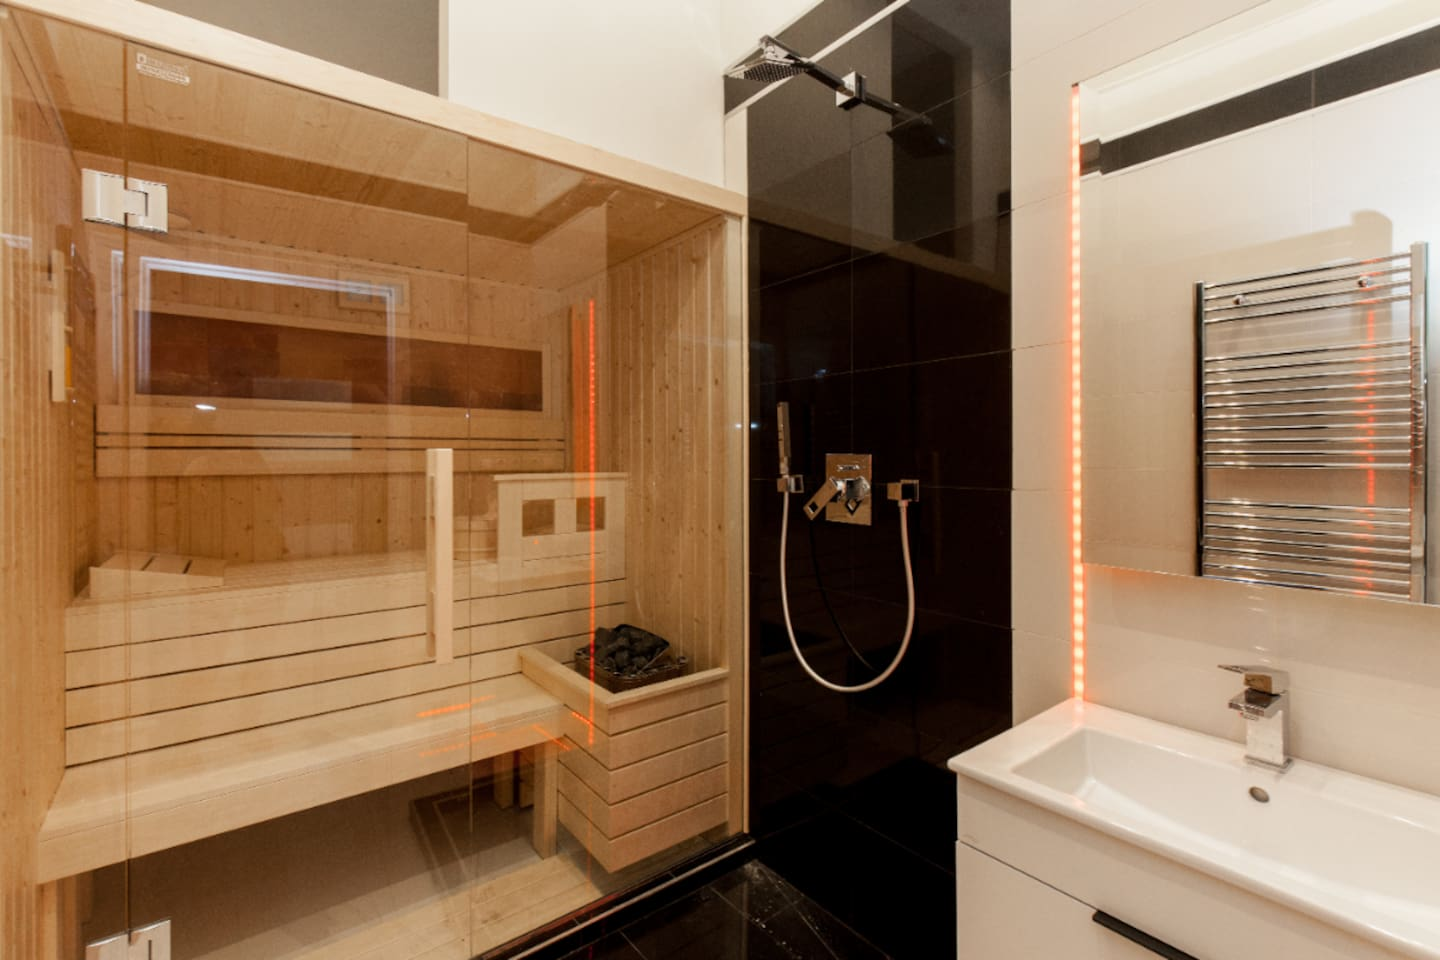 Super nice Sauna and fully equiped bathroom